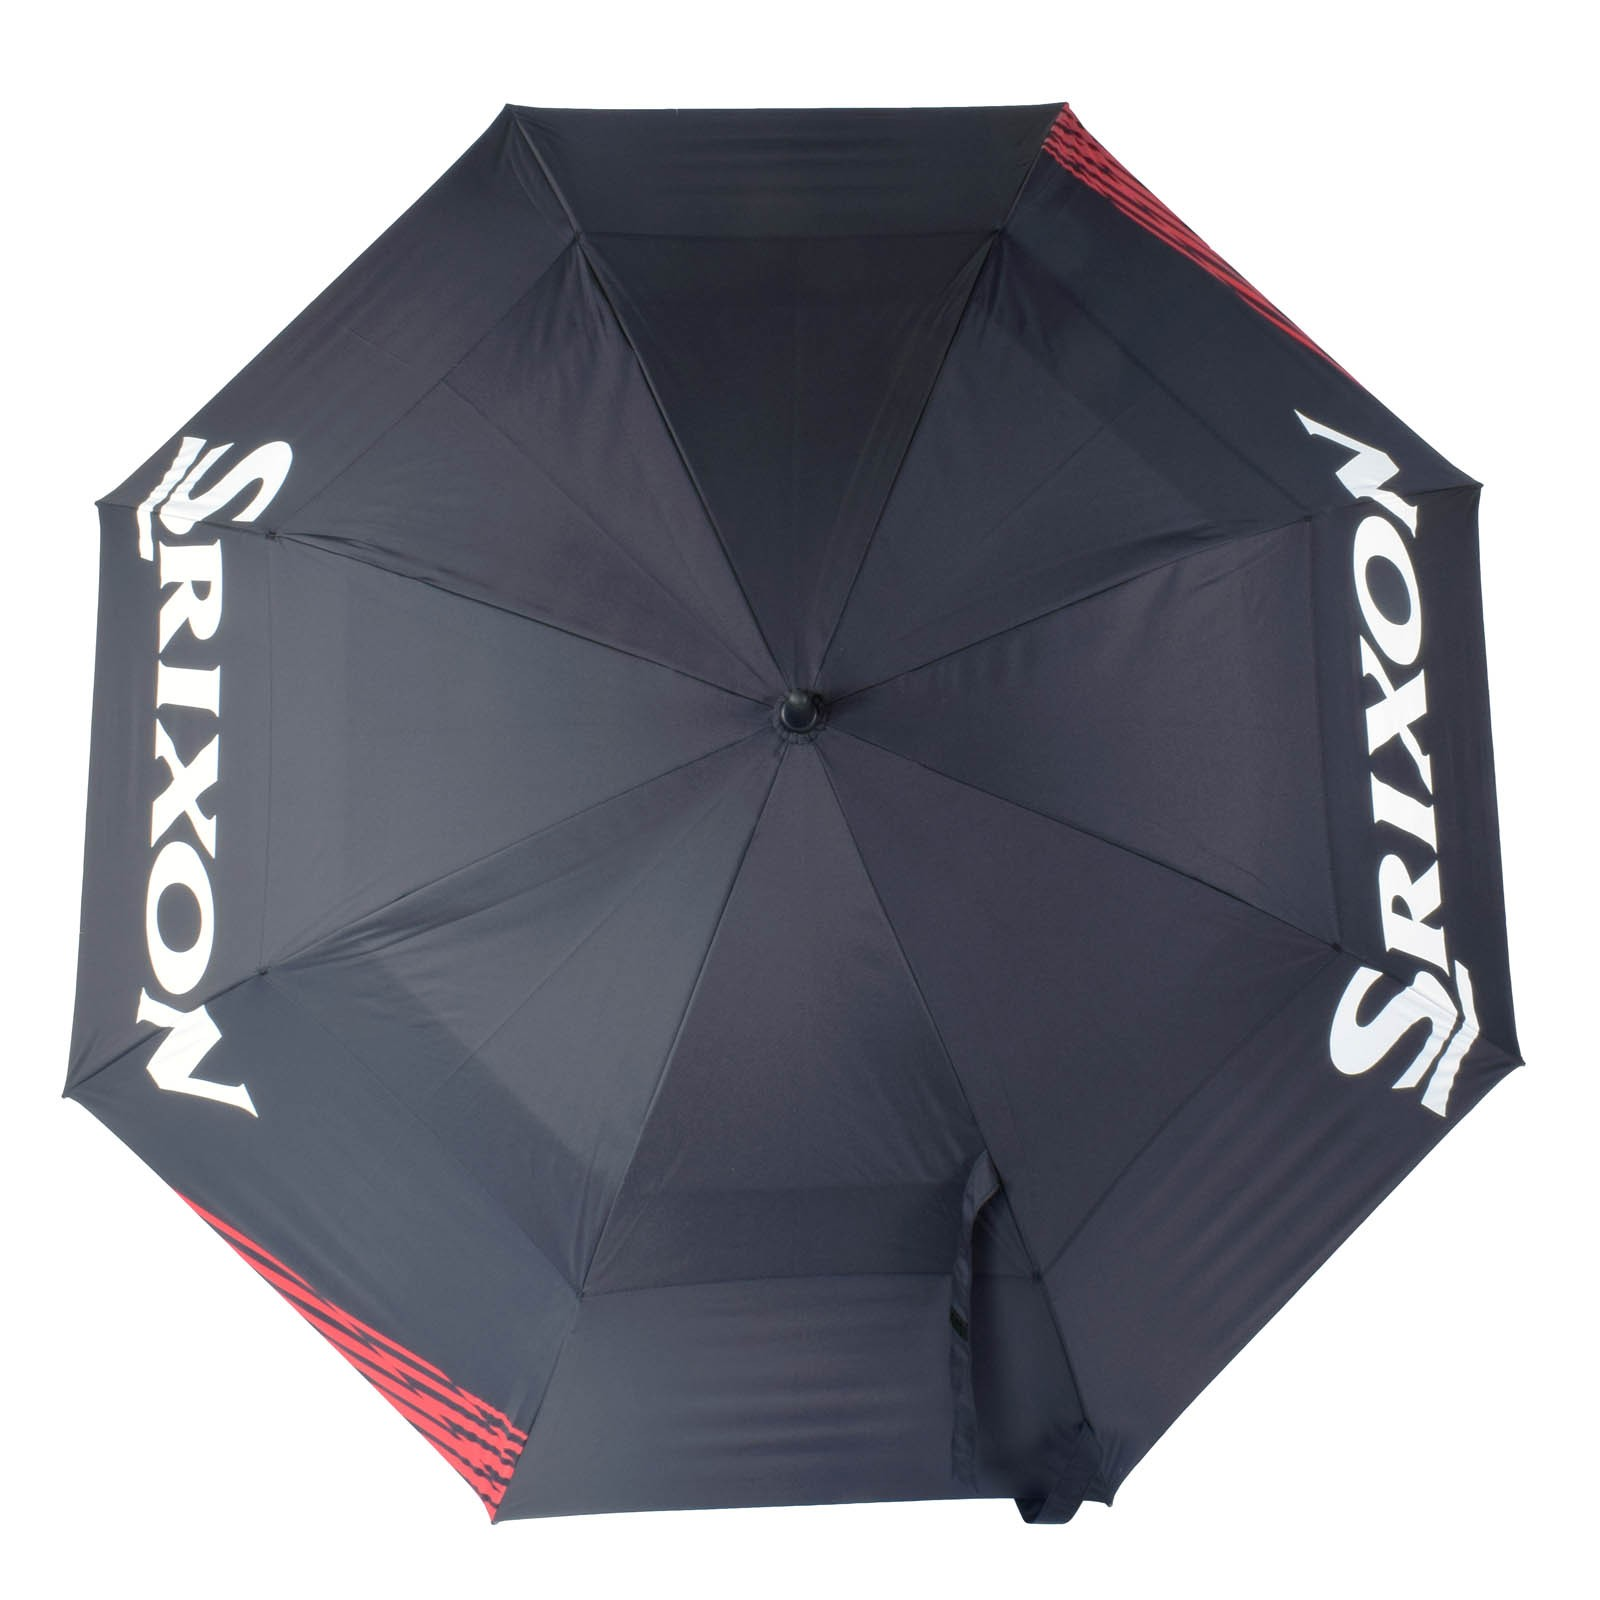 Srixon Double Canopy 62 Inch Umbrella